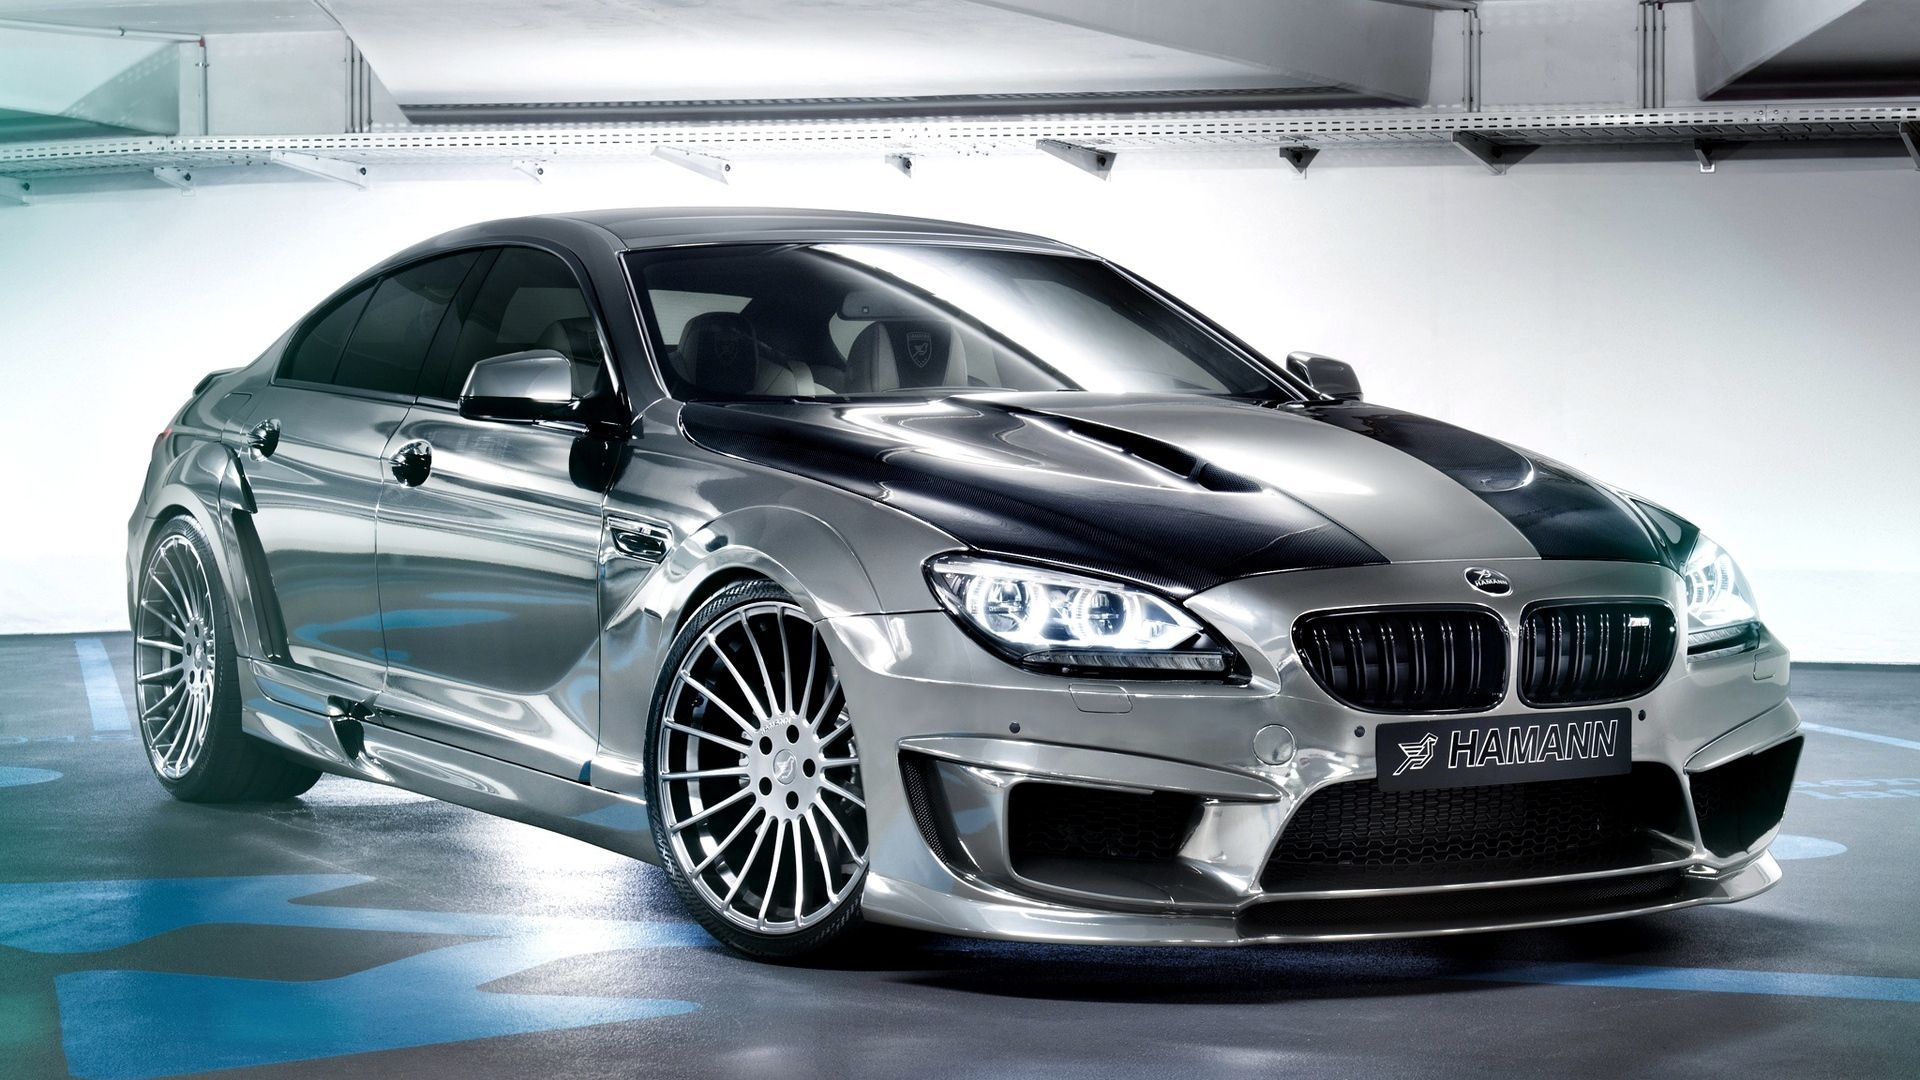 Download Wallpaper 1920x1080 Bmw F06 Gran Coupe Tuning Hamann Full Hd 1080p Hd Background Bmw M6 Gran Coupe Bmw